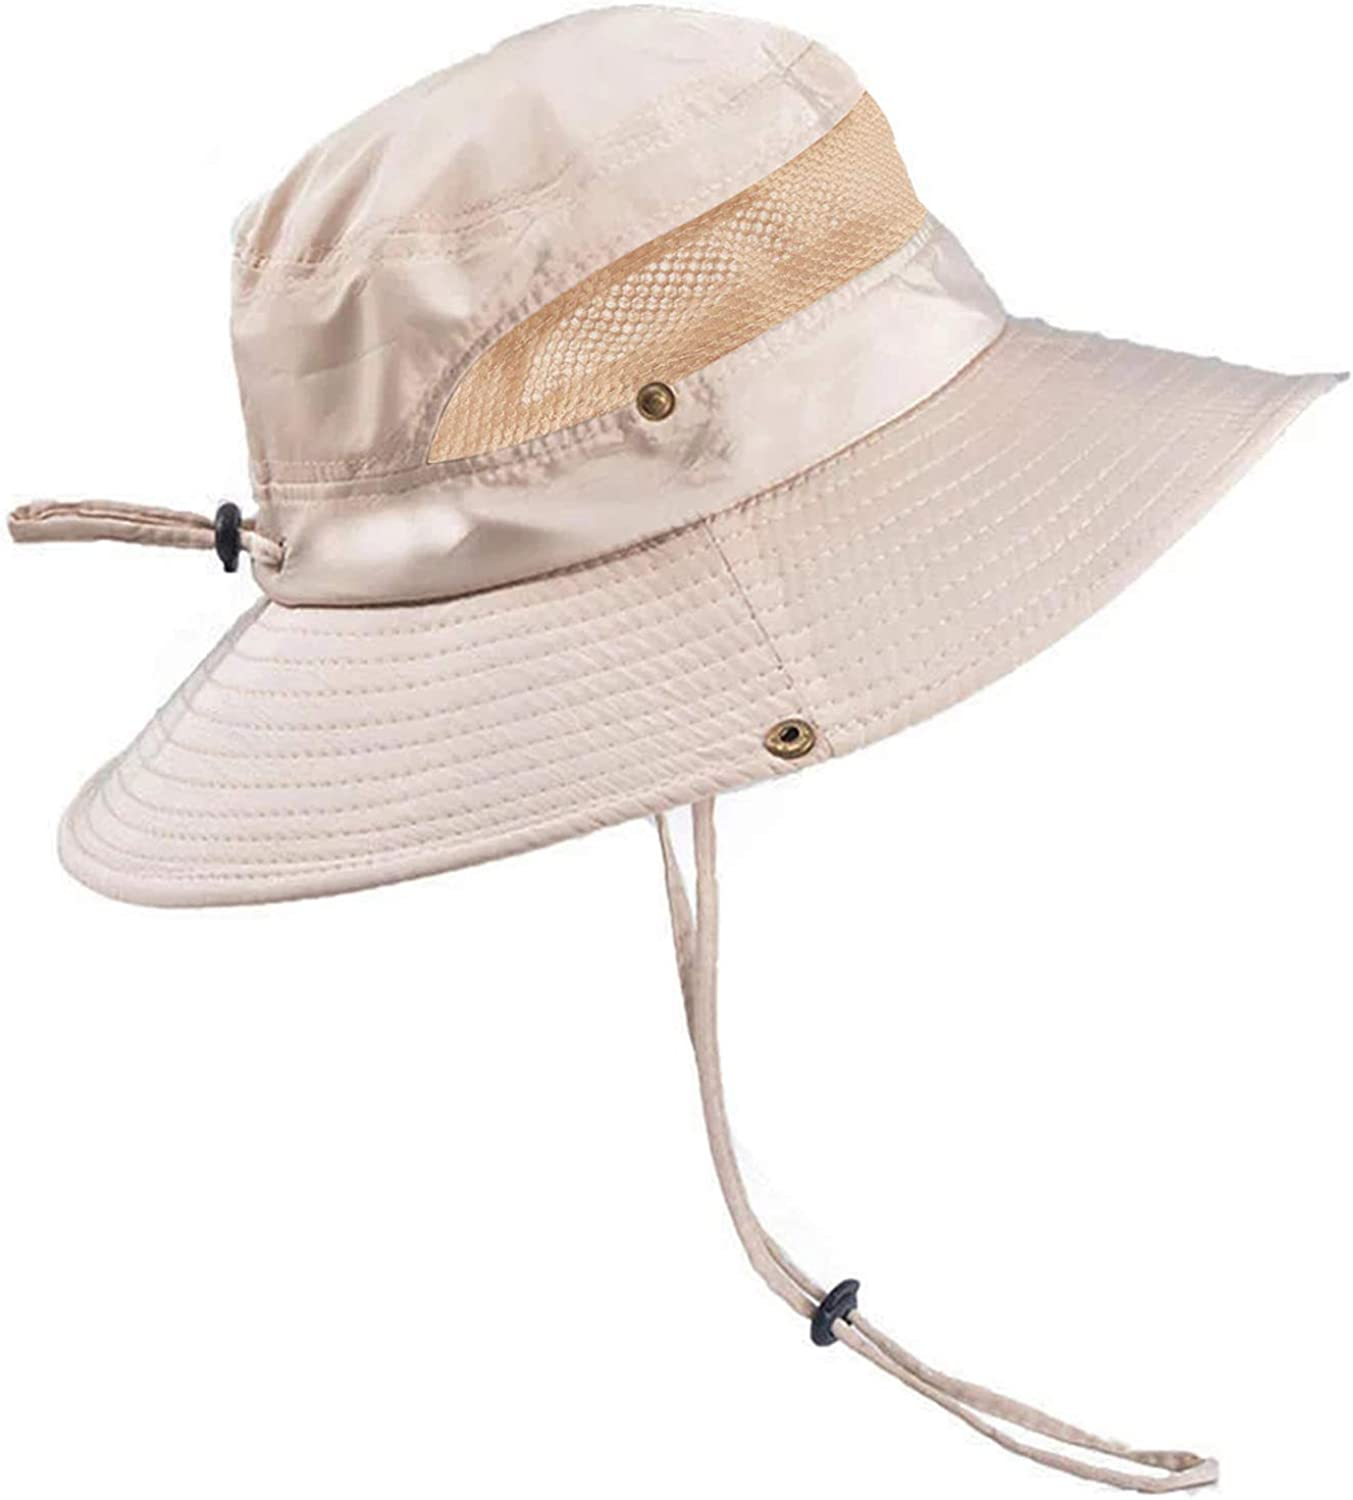 Gray Sun//Fishing Hat Large Brimmed Flap Cap w//2 adjust Cover Cord for Unisex